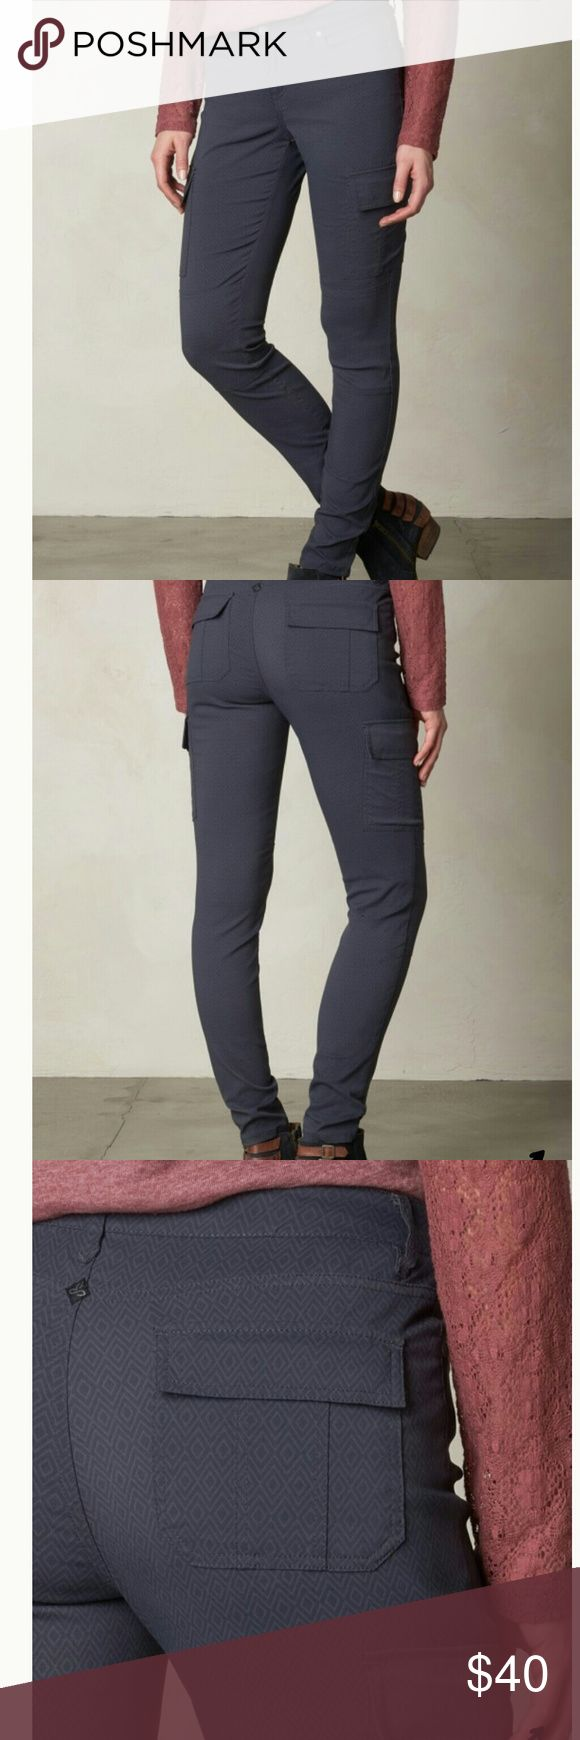 EUC Prana Meme Pants size 14 EUC Prana Meme Skinny Pants size 14. Only wore once but I'm not feeling skinny jeans on me. Our quintessential Stretch Zion fabric in a skinny leg combines style and performance. Four-way stretch and DWR water-repellent and durable finish means you can take this pant anywhere, from the streets to the campsite, the office to the trail. 97% nylon/3% spandexStretch 'Zion' performance woven with durable water repellent (DWR) finish. 32in inseam. Prana Pants Skinny